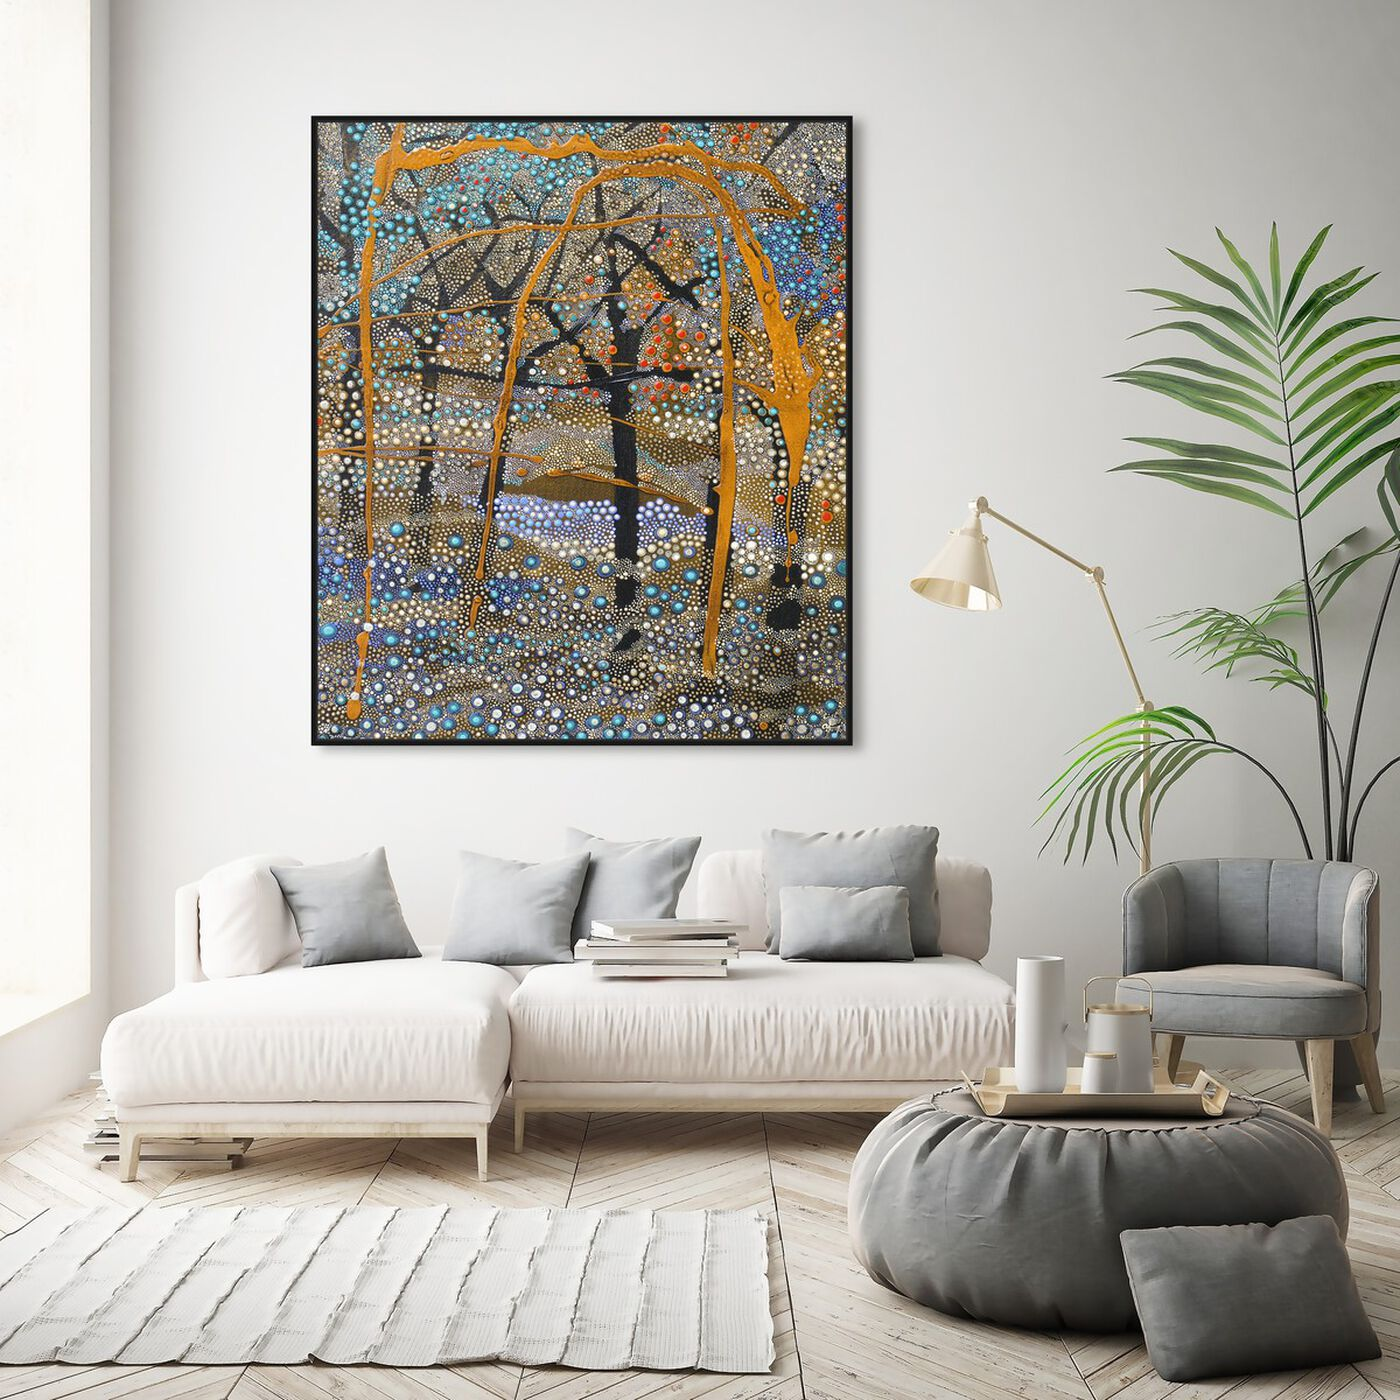 Hanging view of Enriqueta Ahrensburg - Otoño featuring classic and figurative and expressionism art.